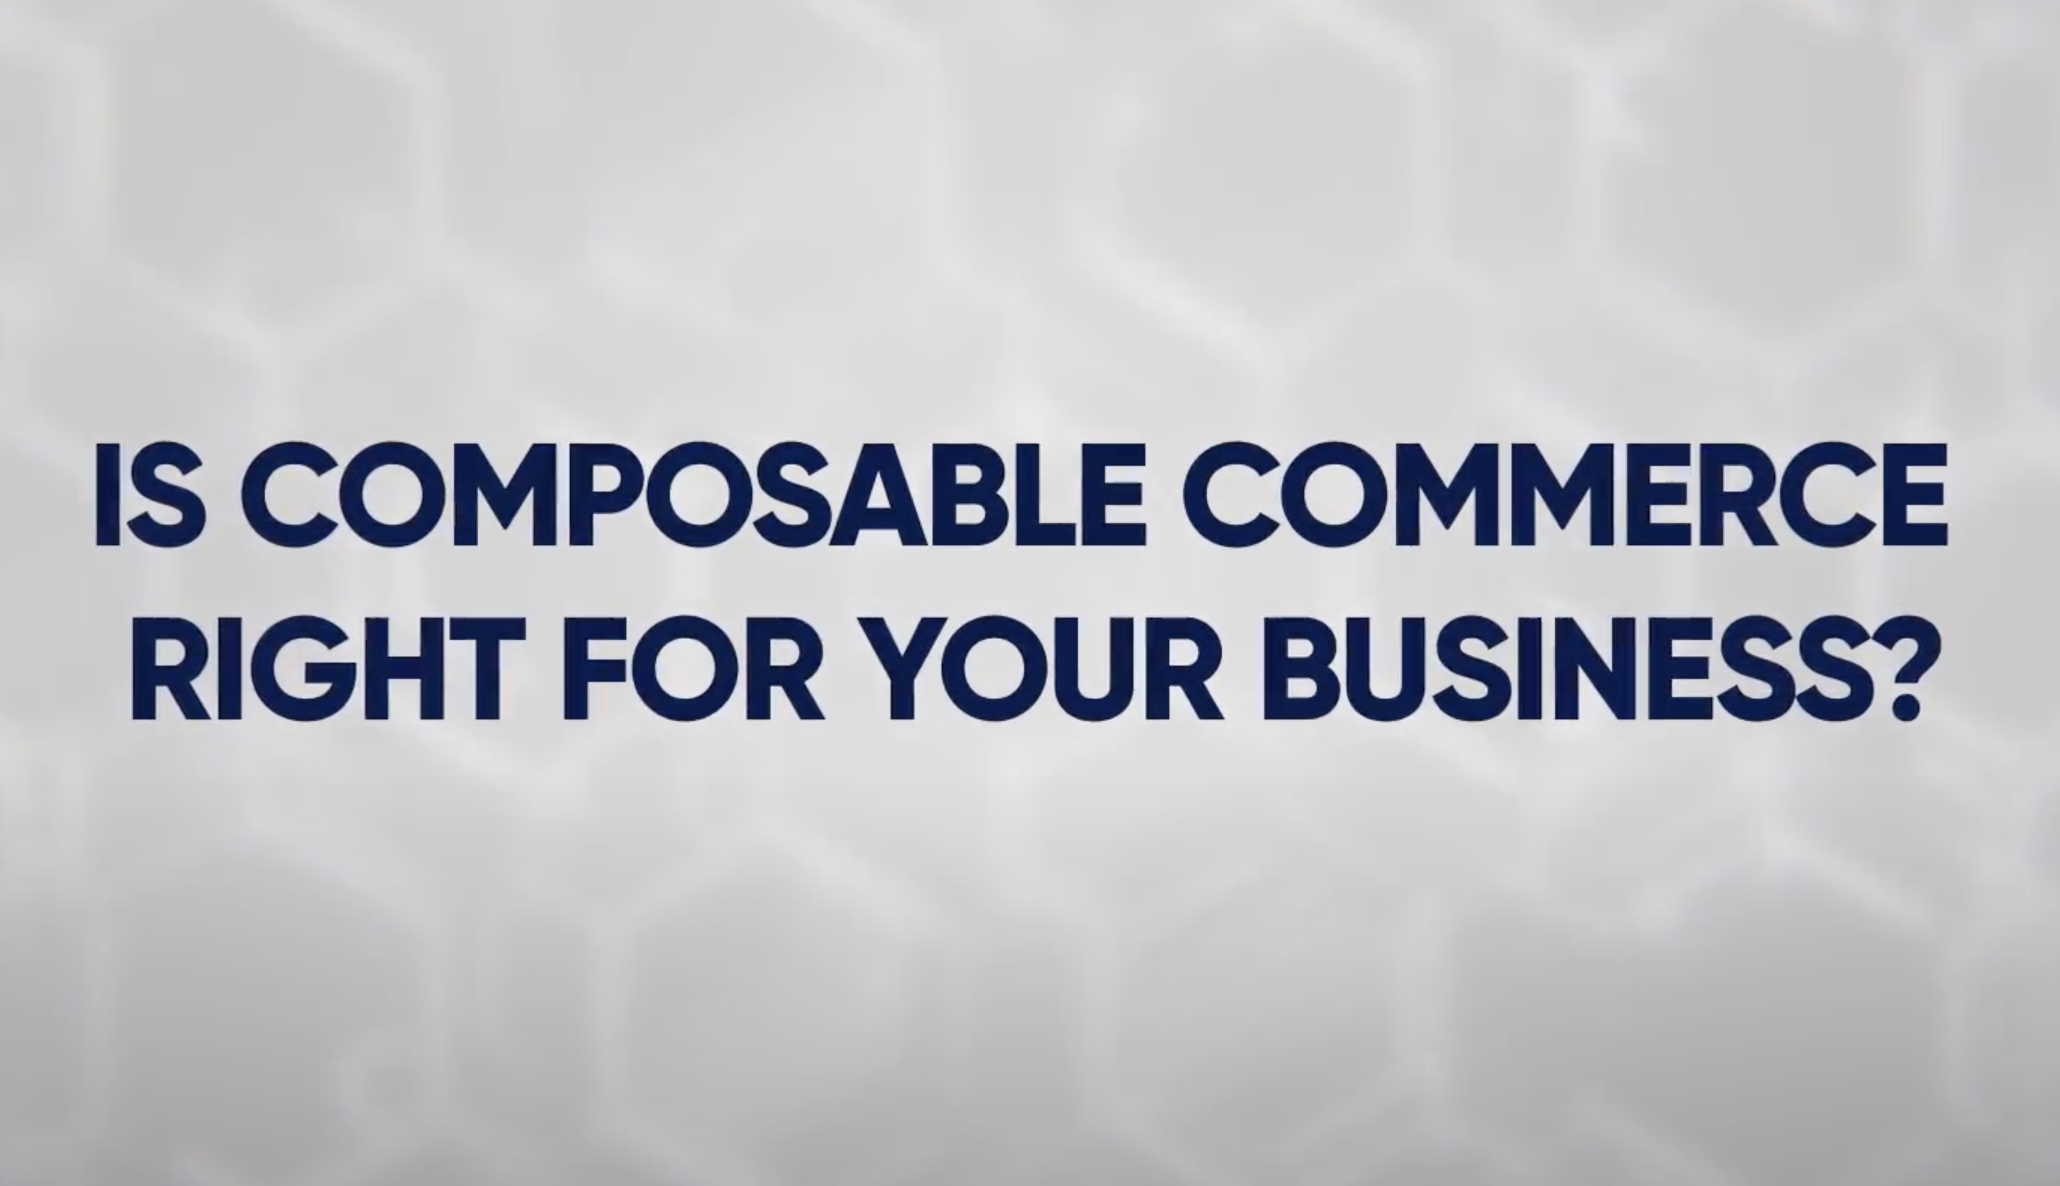 Is Composable Commerce Right For Your Business?